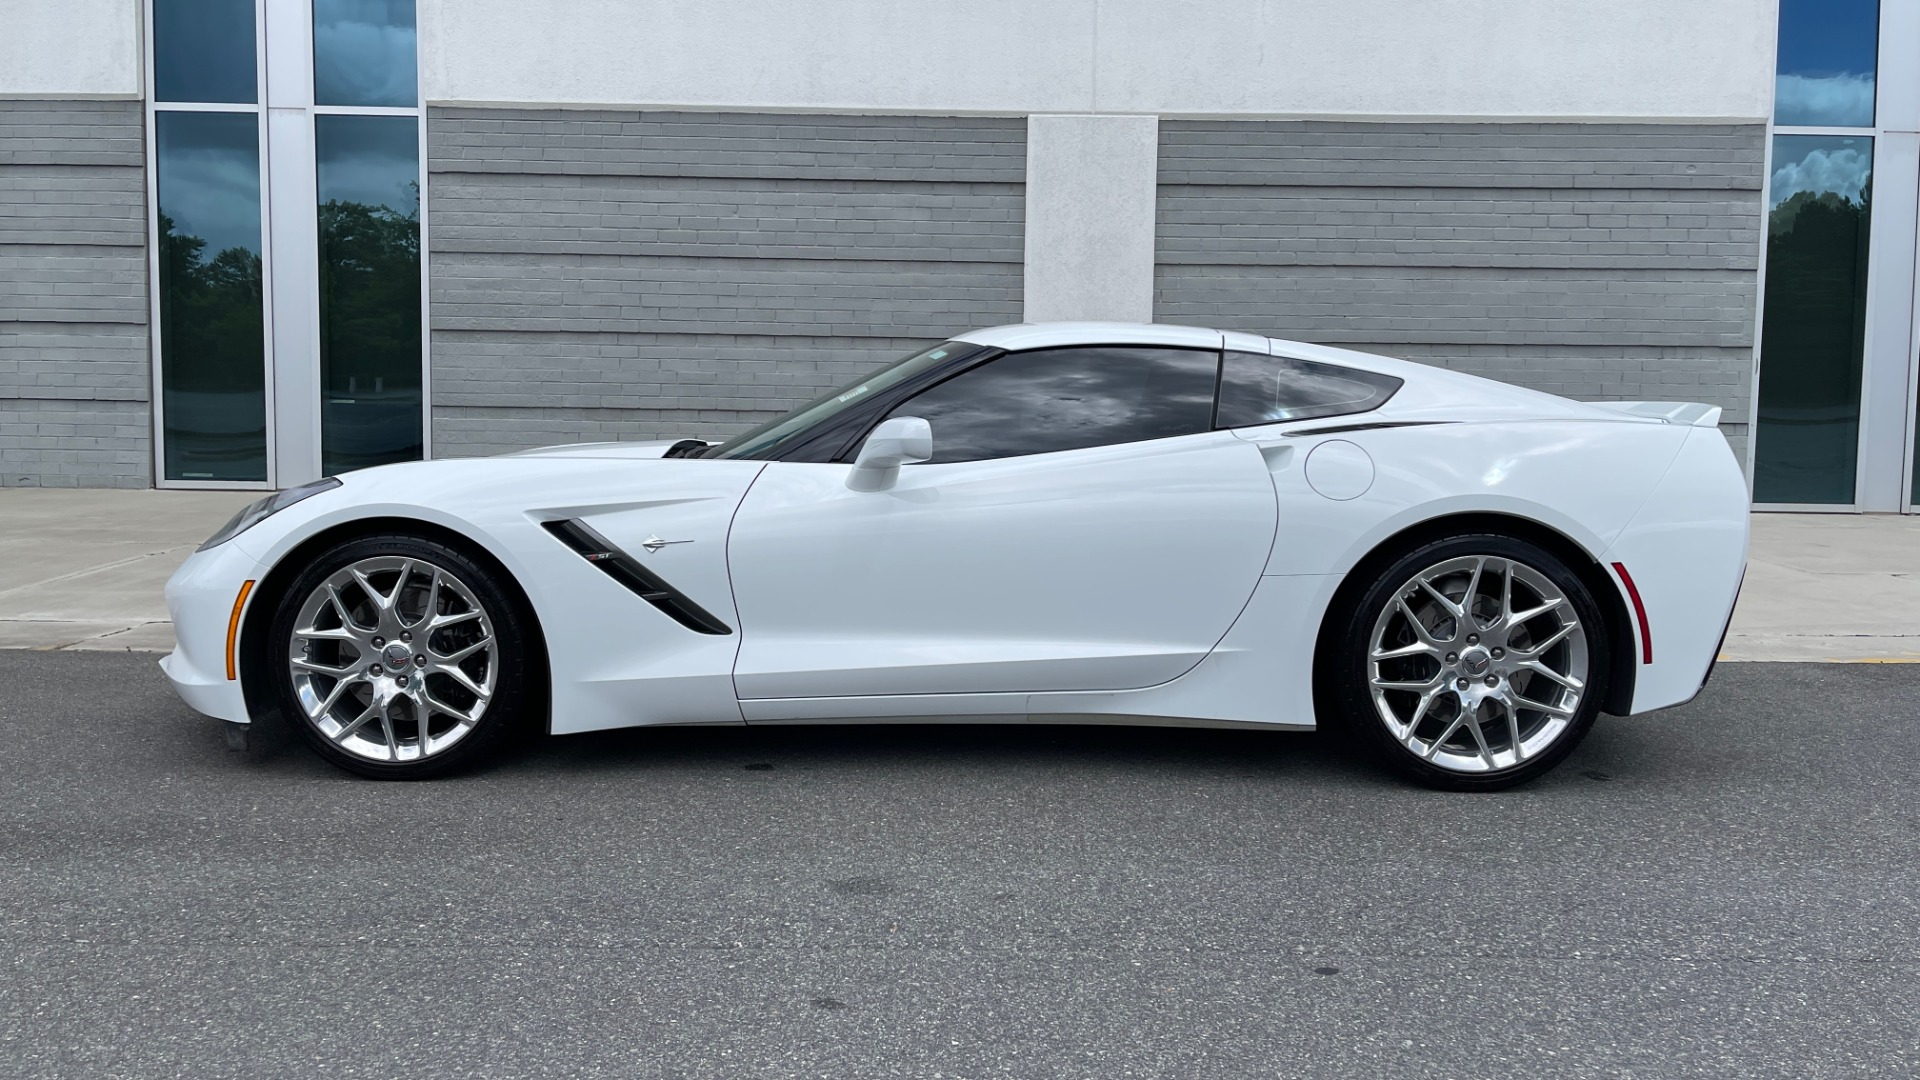 Used 2016 Chevrolet CORVETTE C7 STINGRAY COUPE Z51 3LT / NAV / PERF TRACTION MGMT / REARVIEW for sale Sold at Formula Imports in Charlotte NC 28227 6